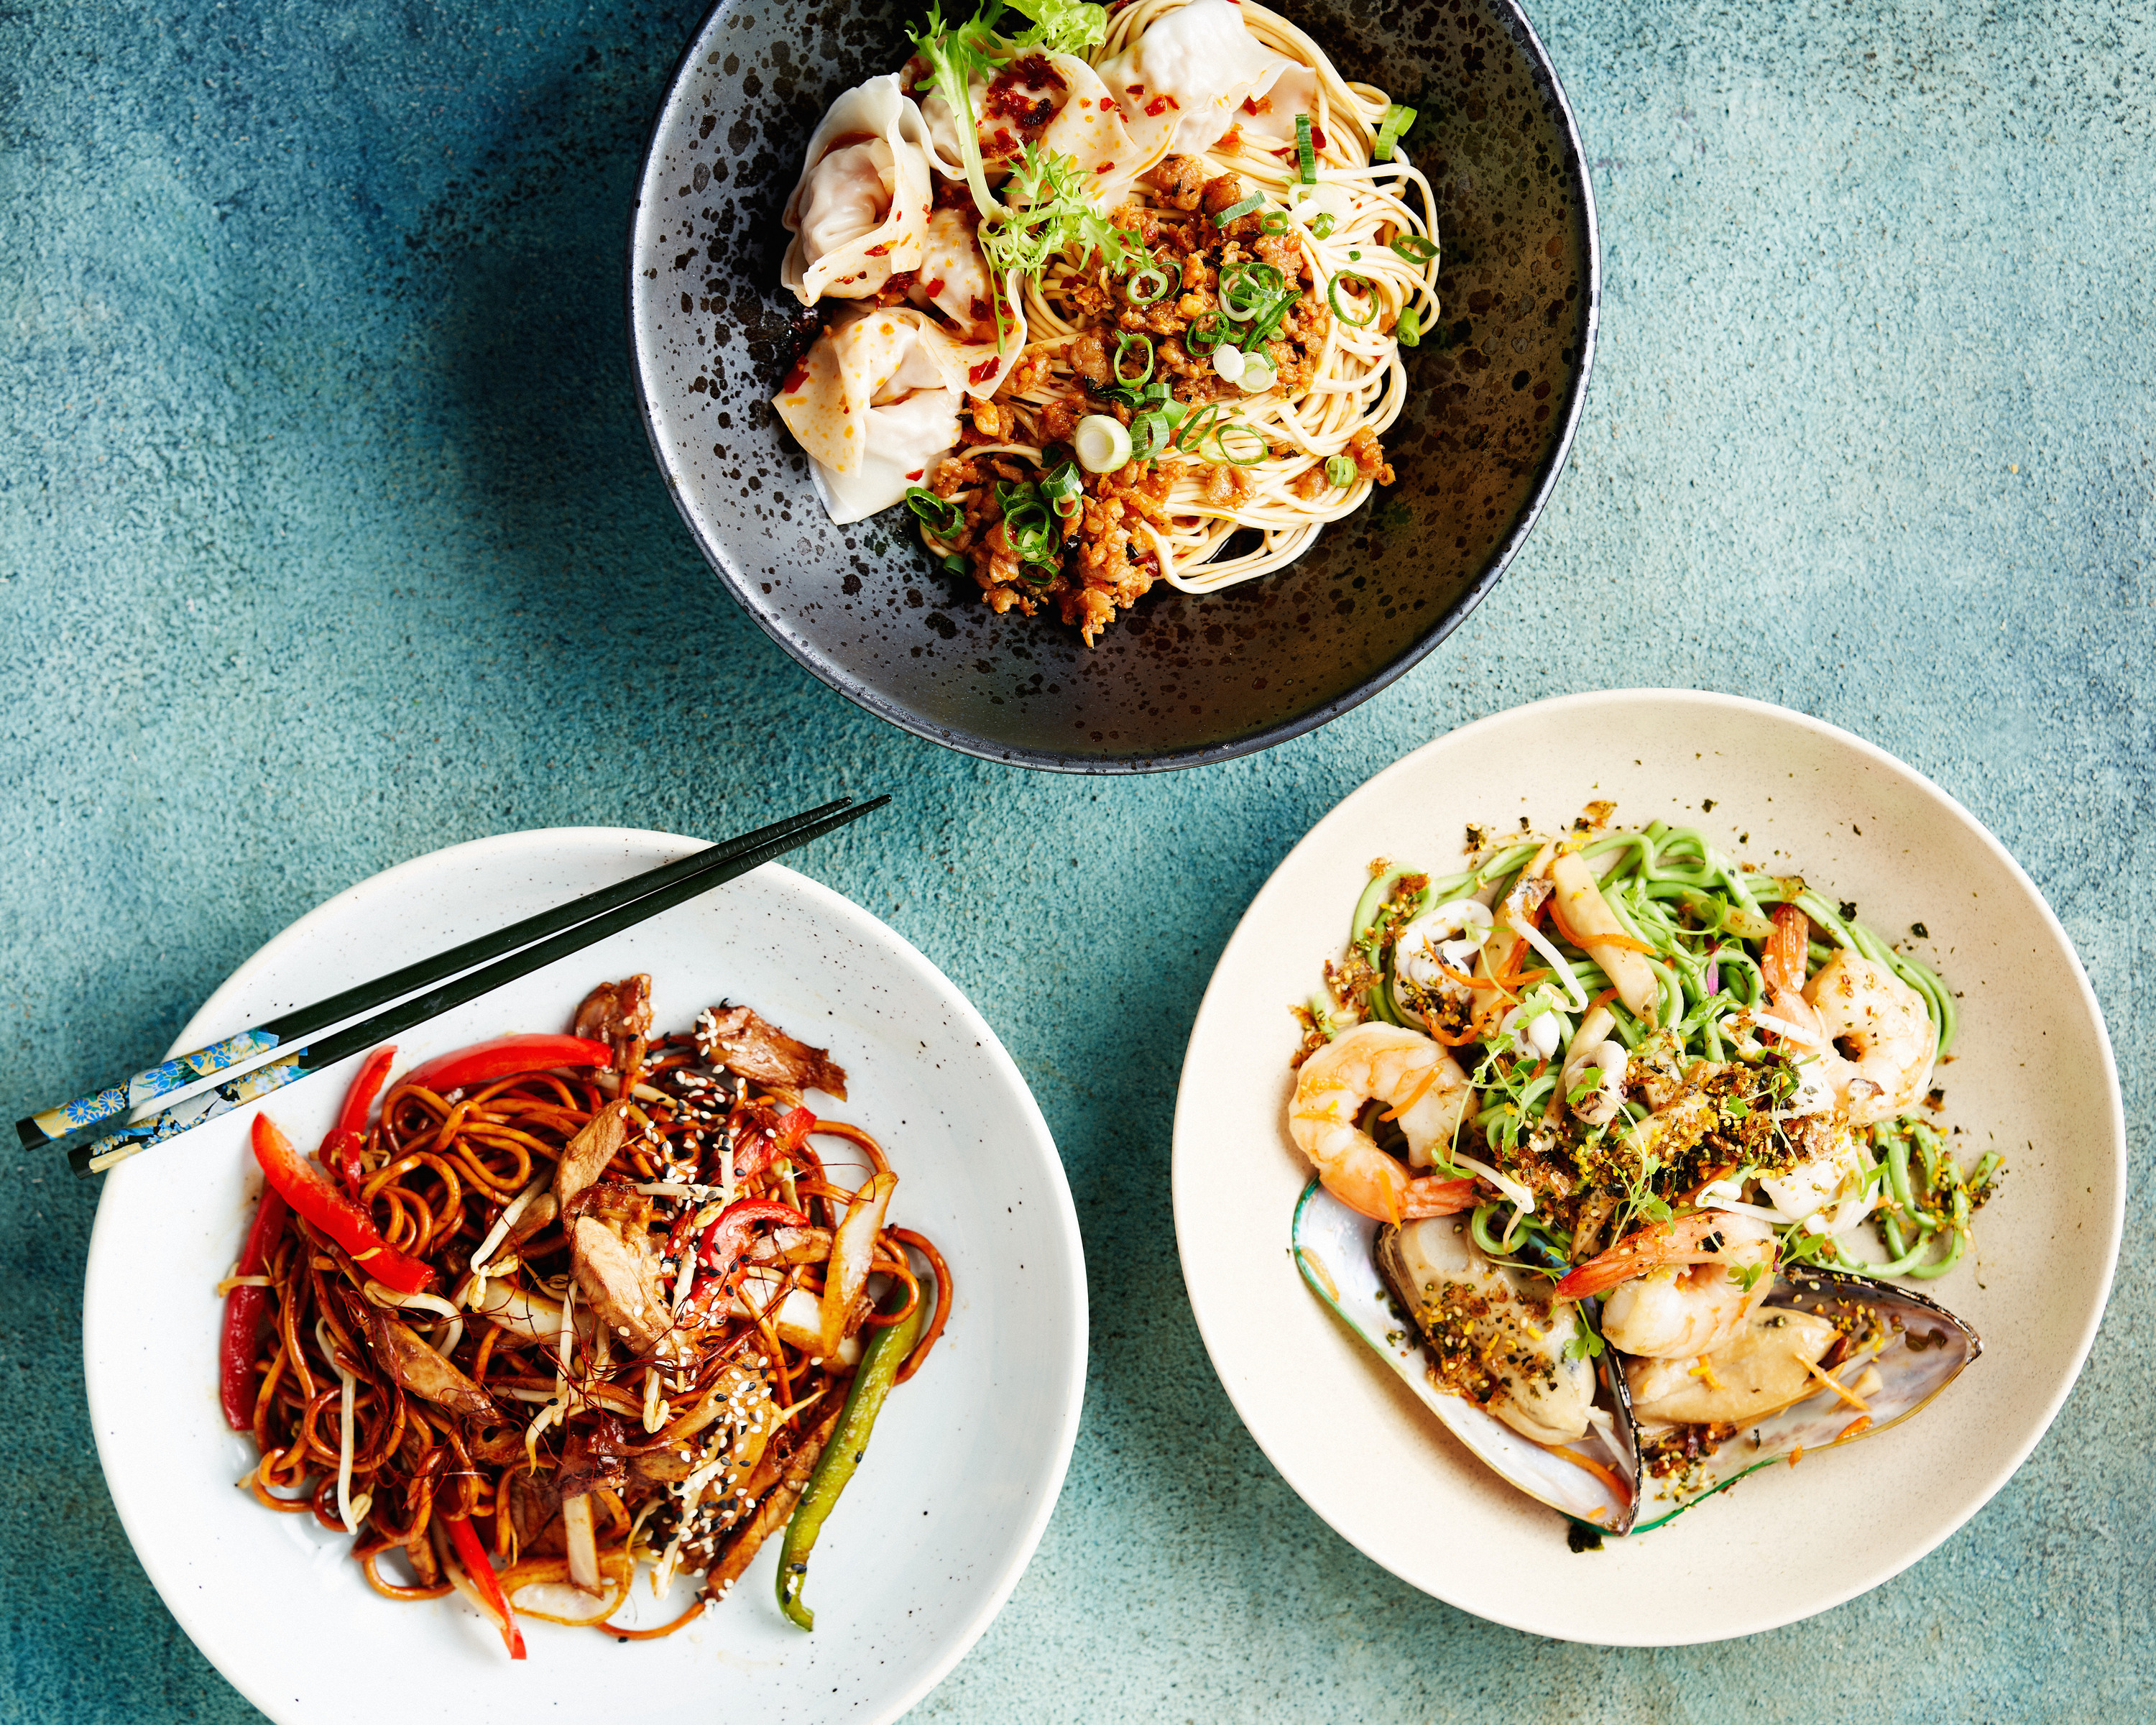 Stir fry dishes on a table.